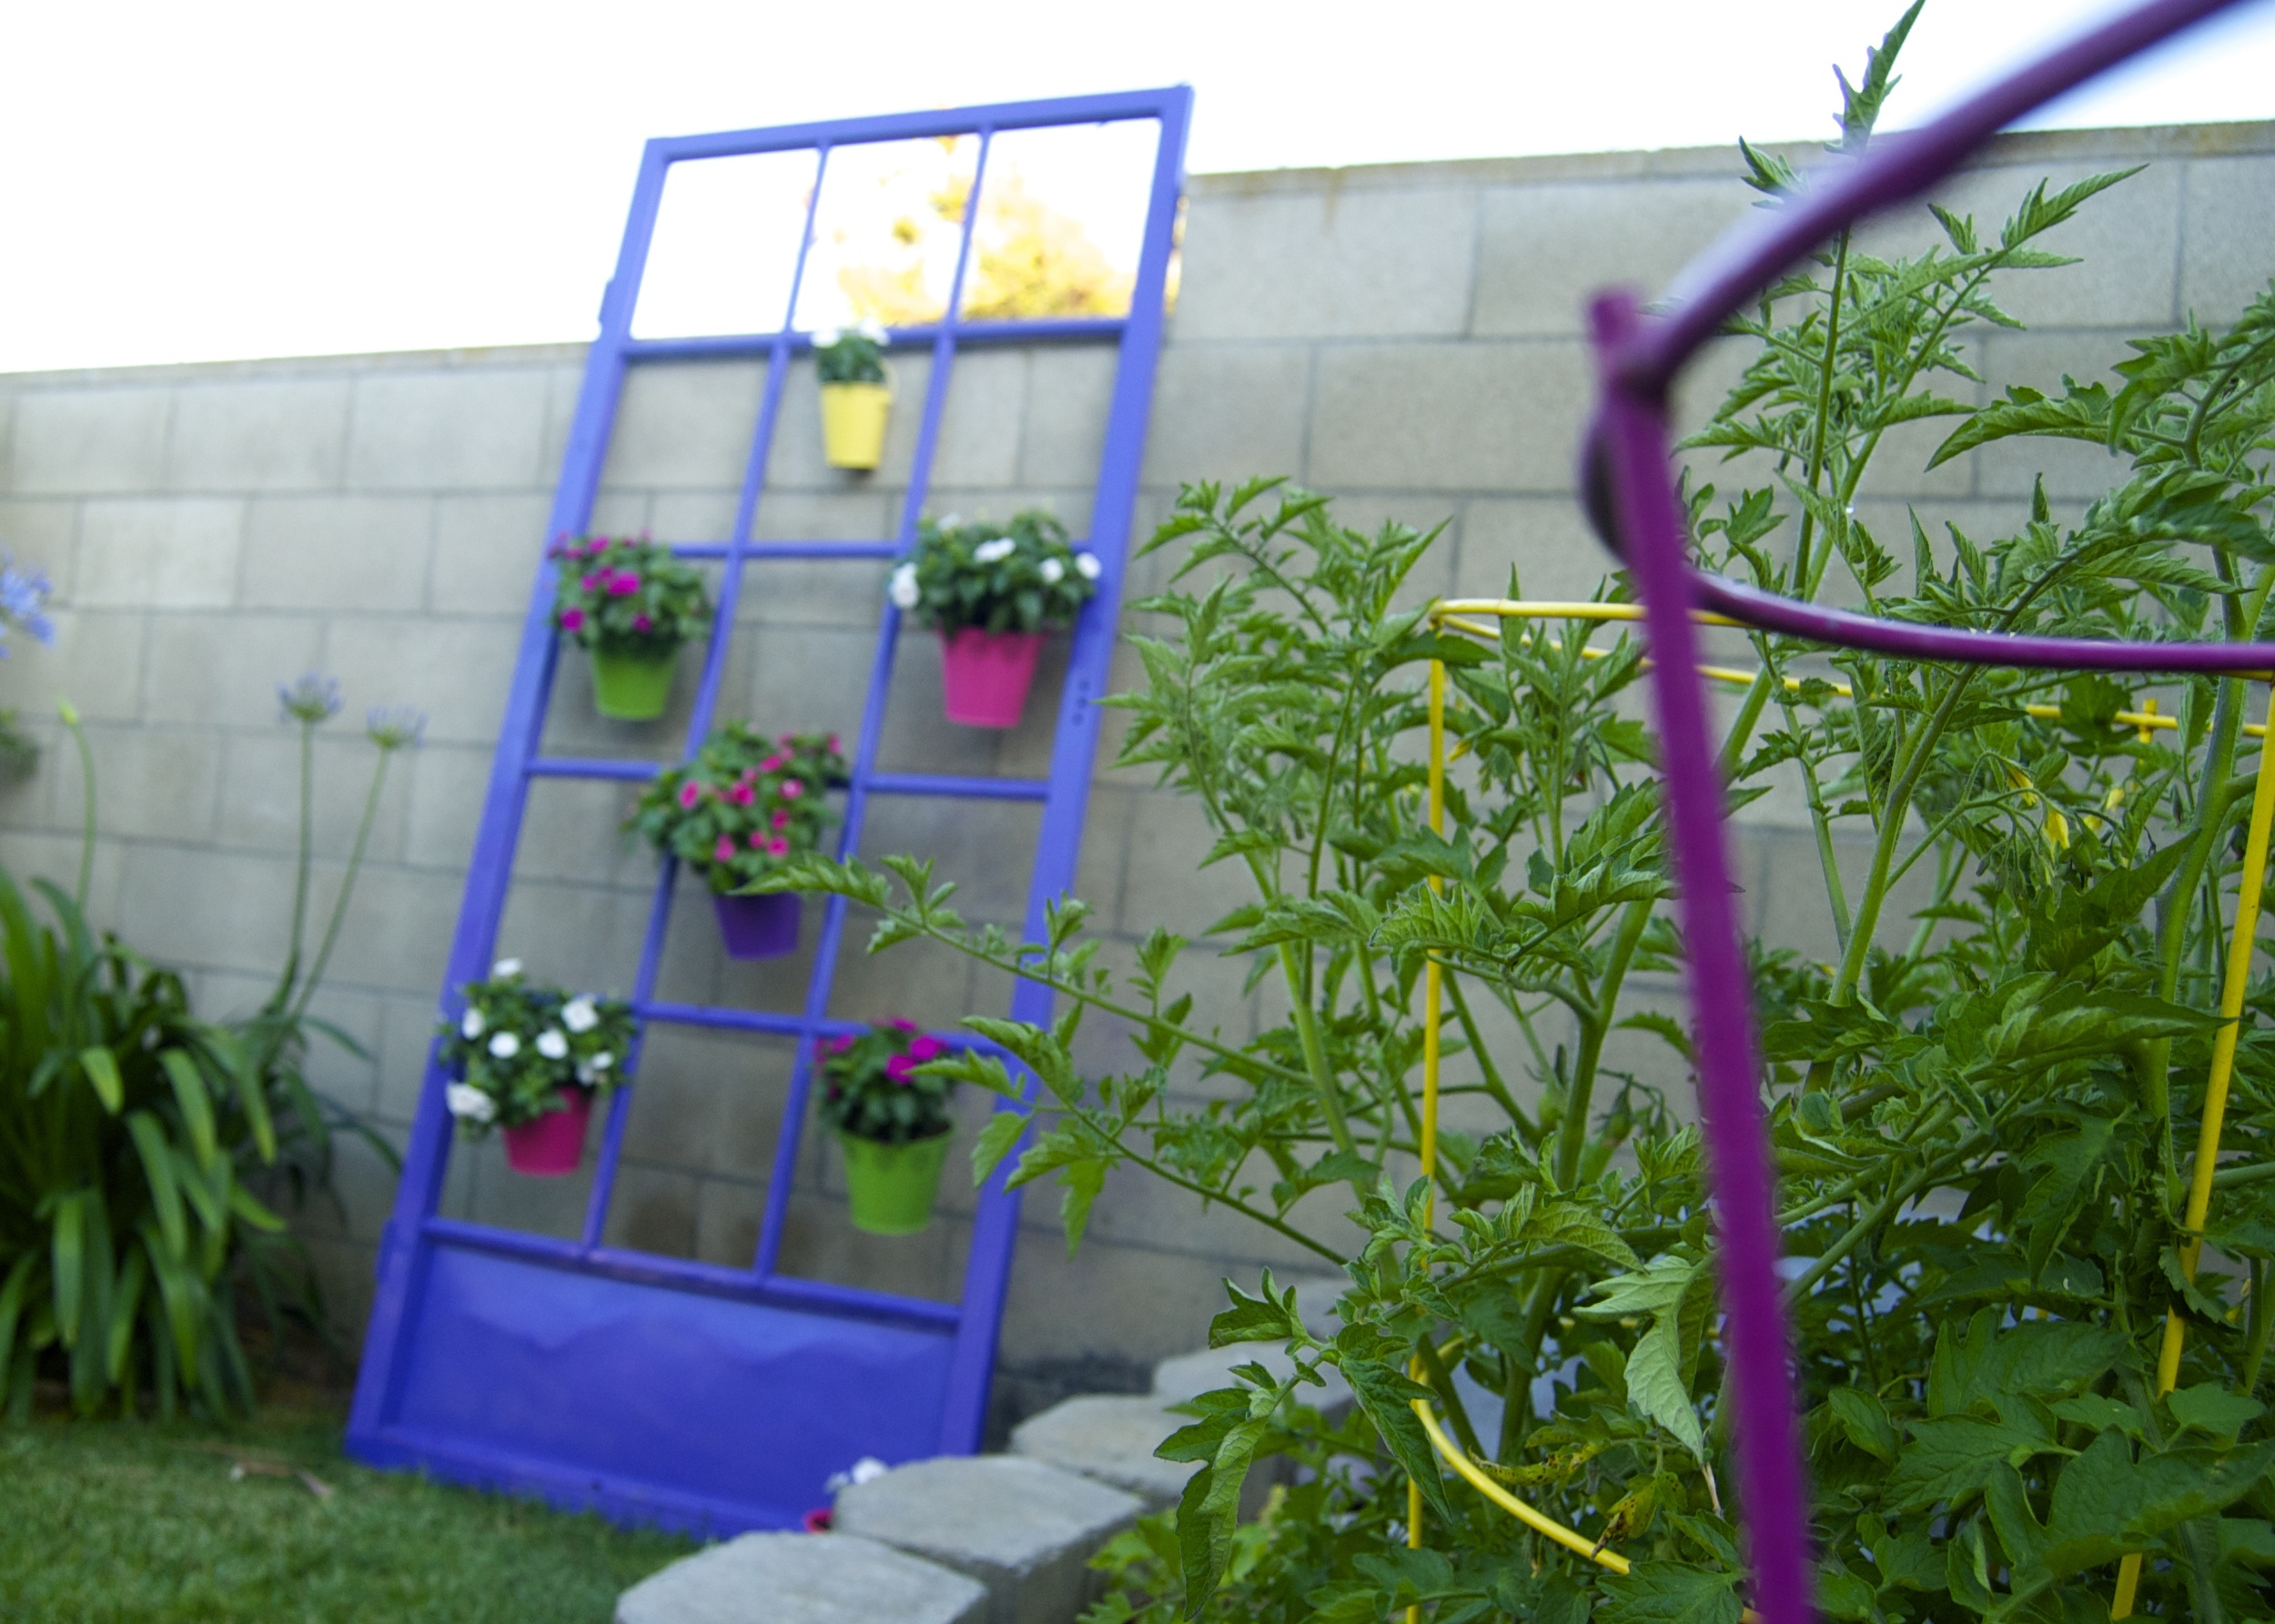 And finally, here's the old metal screen door made new again!